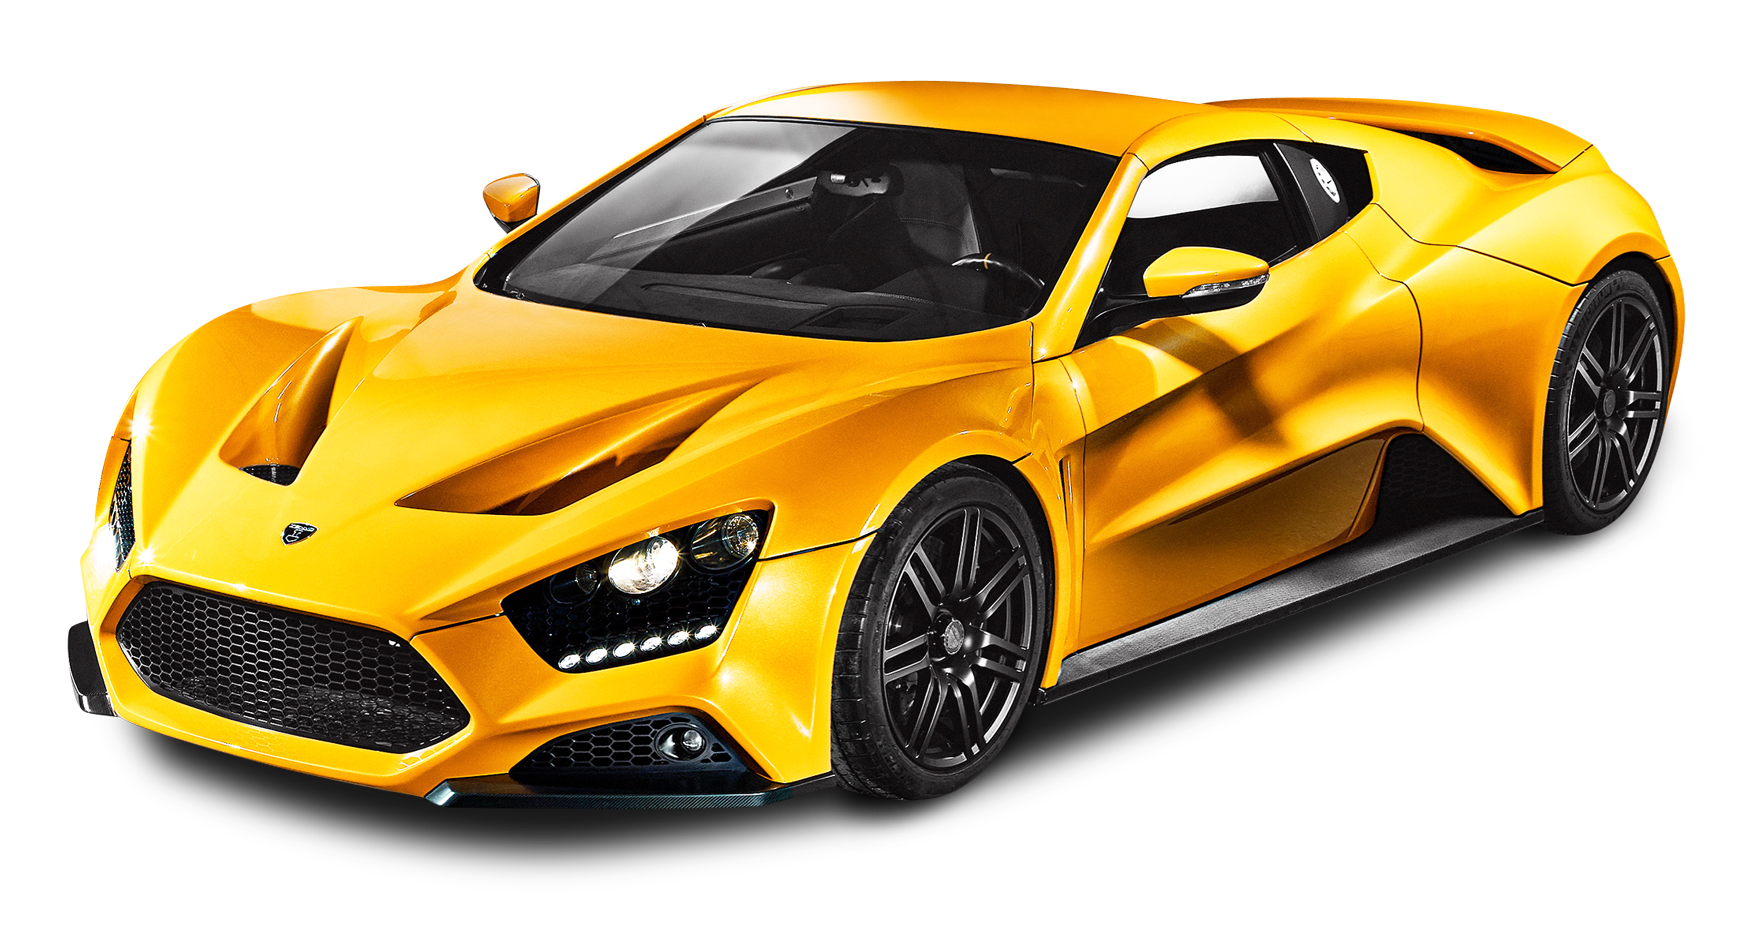 Yellow Zenvo St1 Car Png Image Zenvo St1 Fast Sports Cars Cool Sports Cars